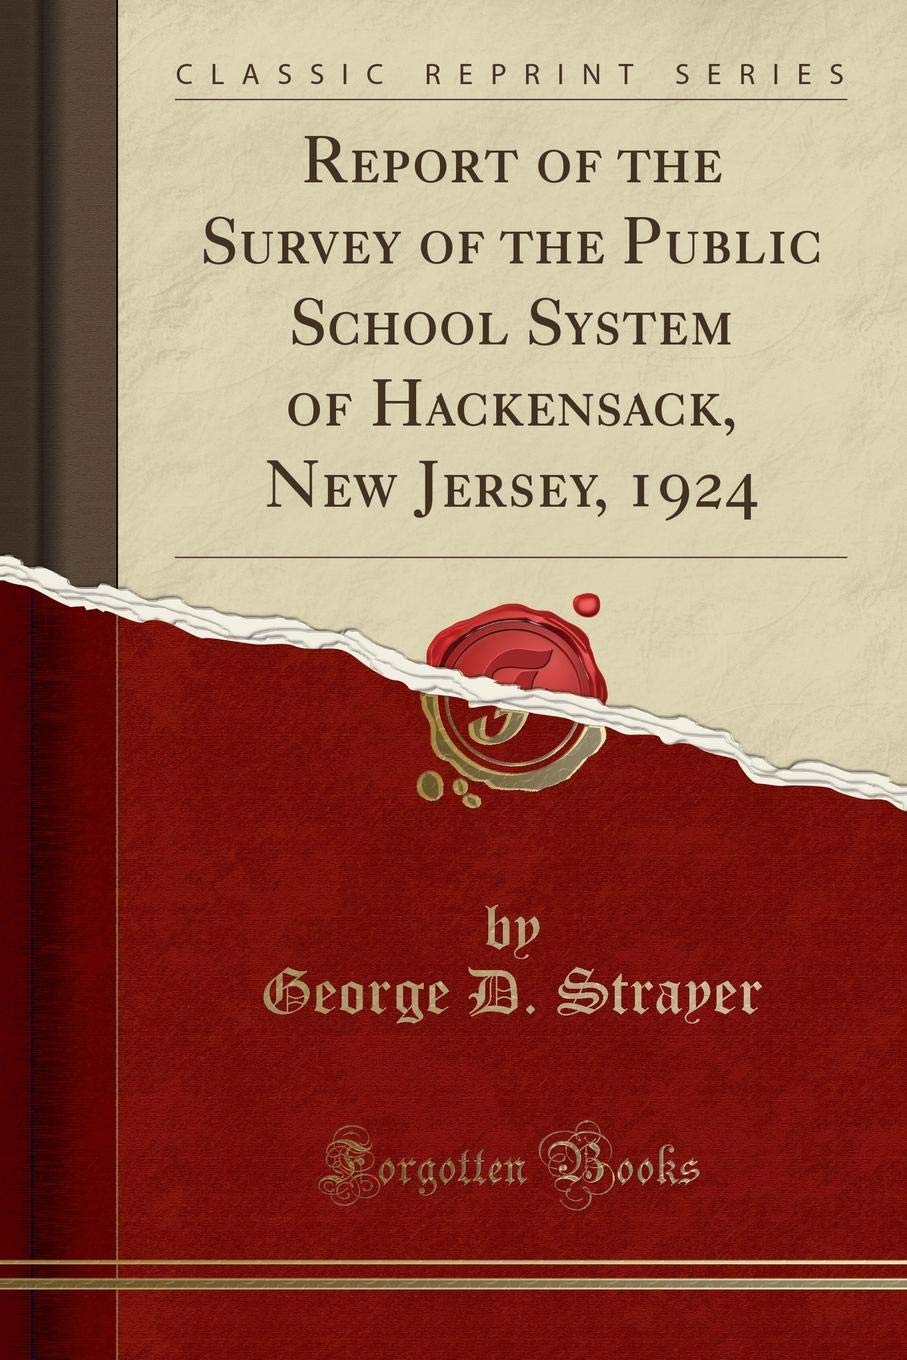 Report of the Survey of the Public School System of Hackensack, New Jersey, 1924 (Classic Reprint) PDF